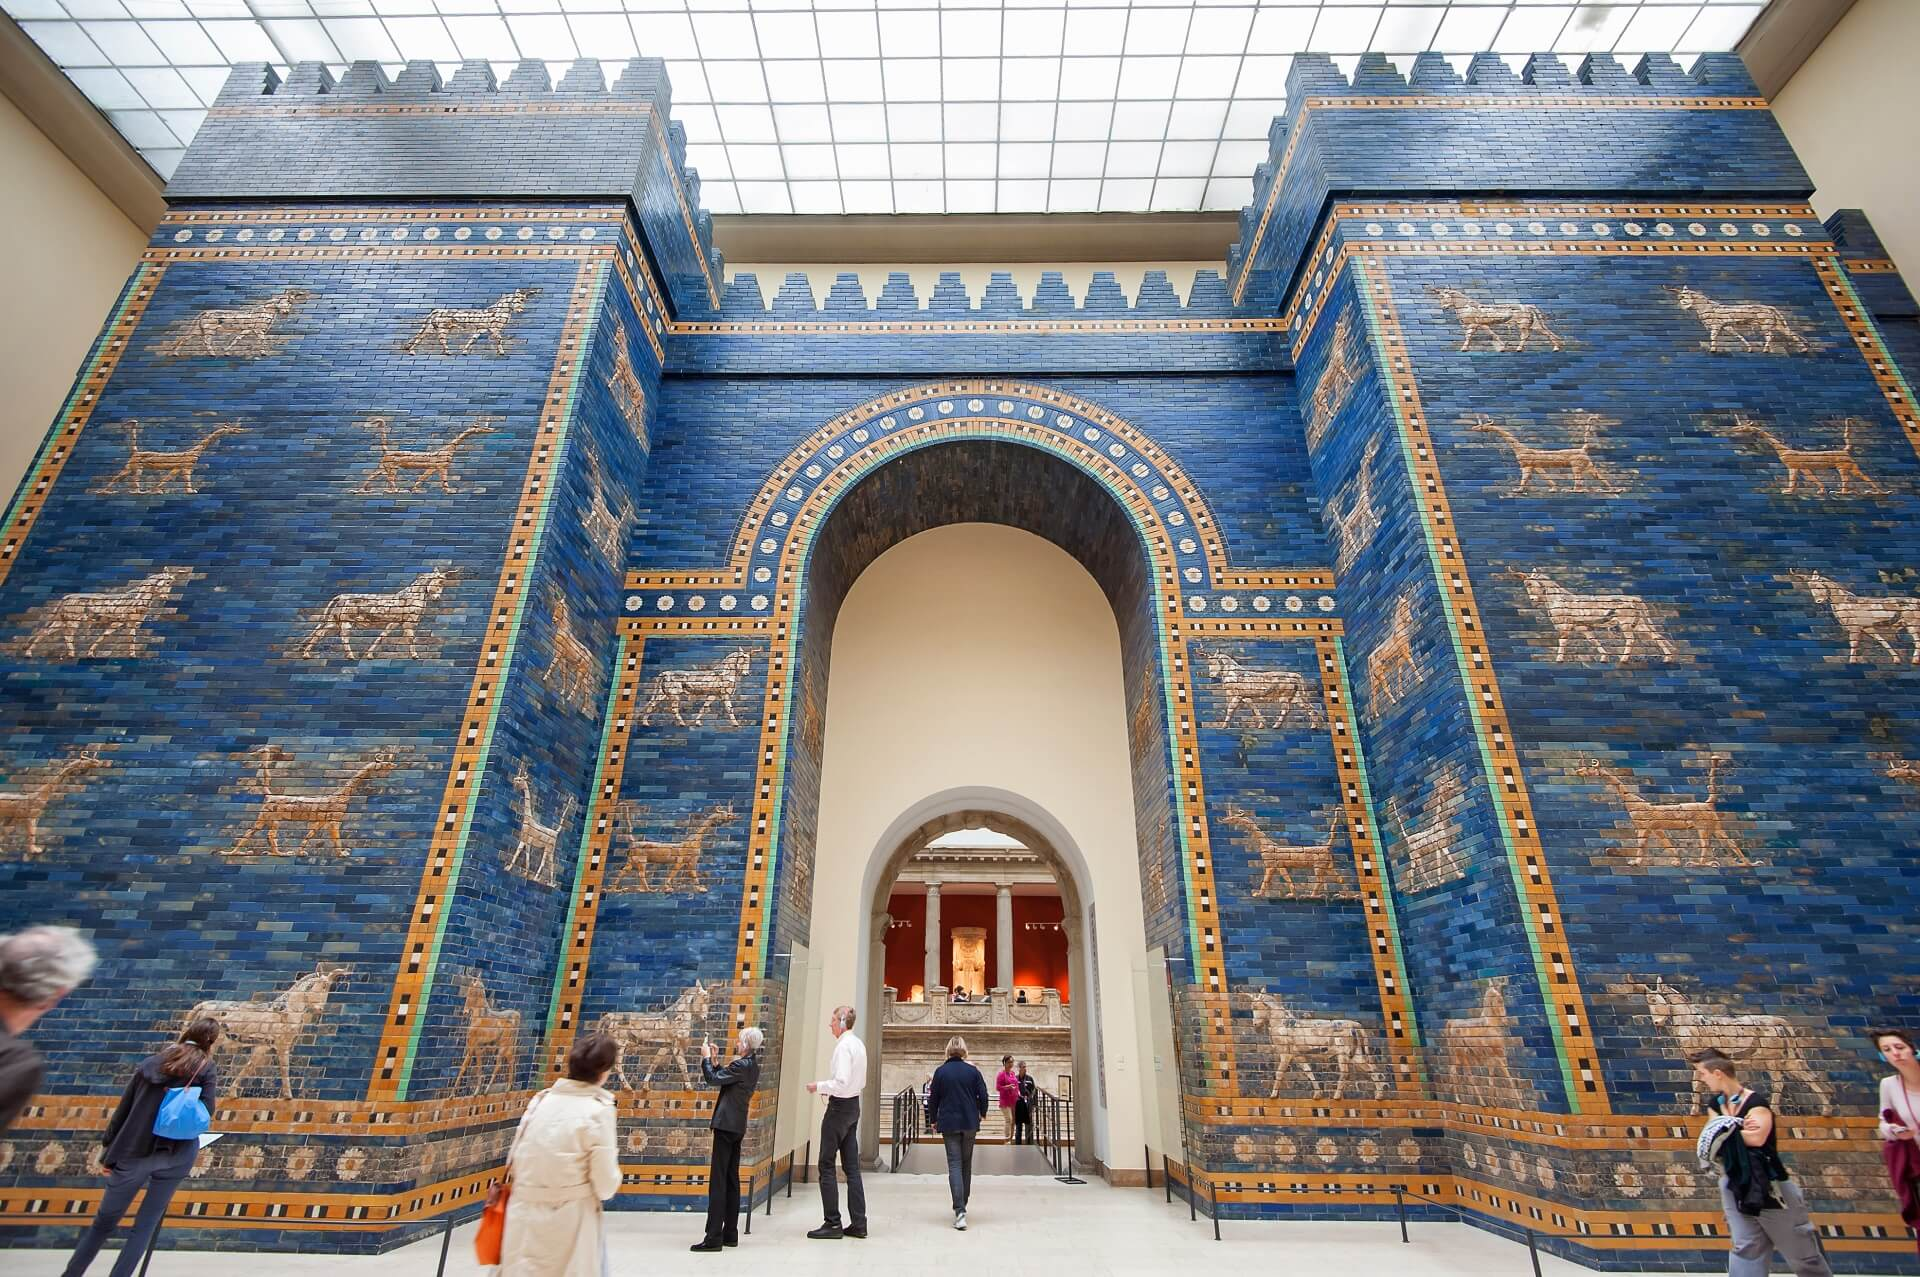 Pergamonmuseum in Berlin